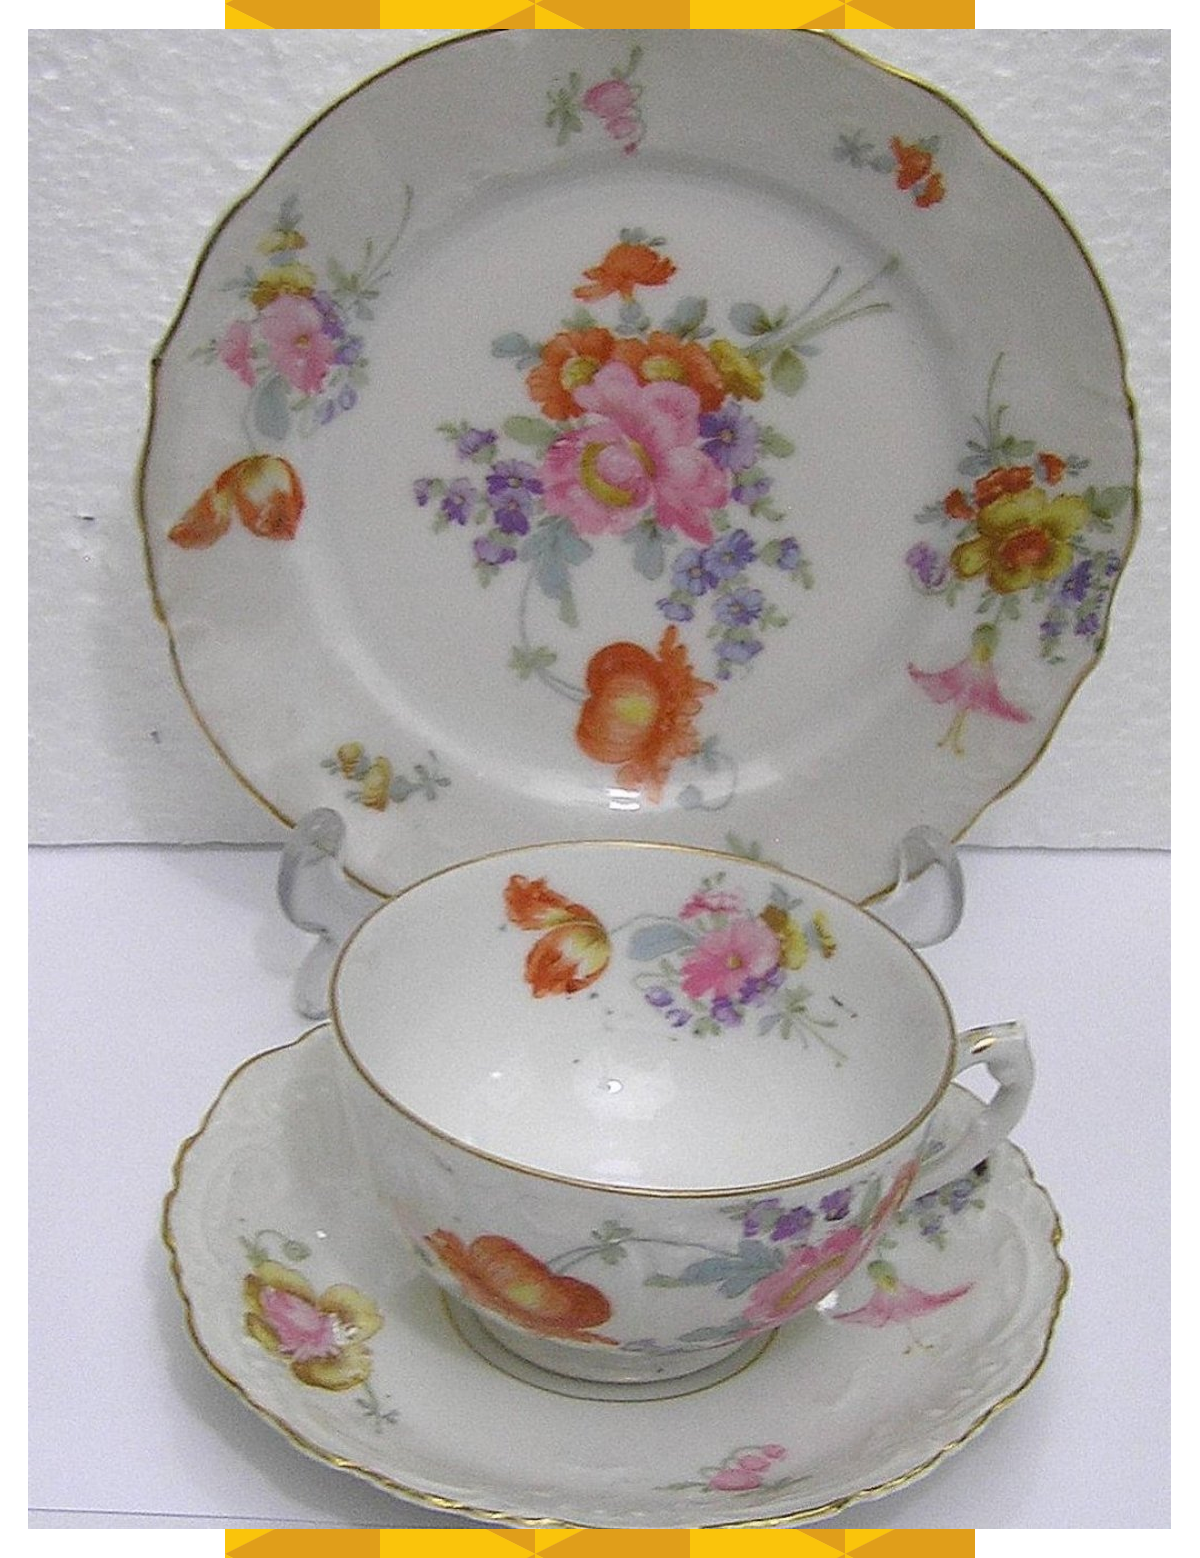 Vintage Art Deco Merkelsgrun Porcelain Austria Fine Bone China Trio Floral Pattern Embossed 19141918br Art